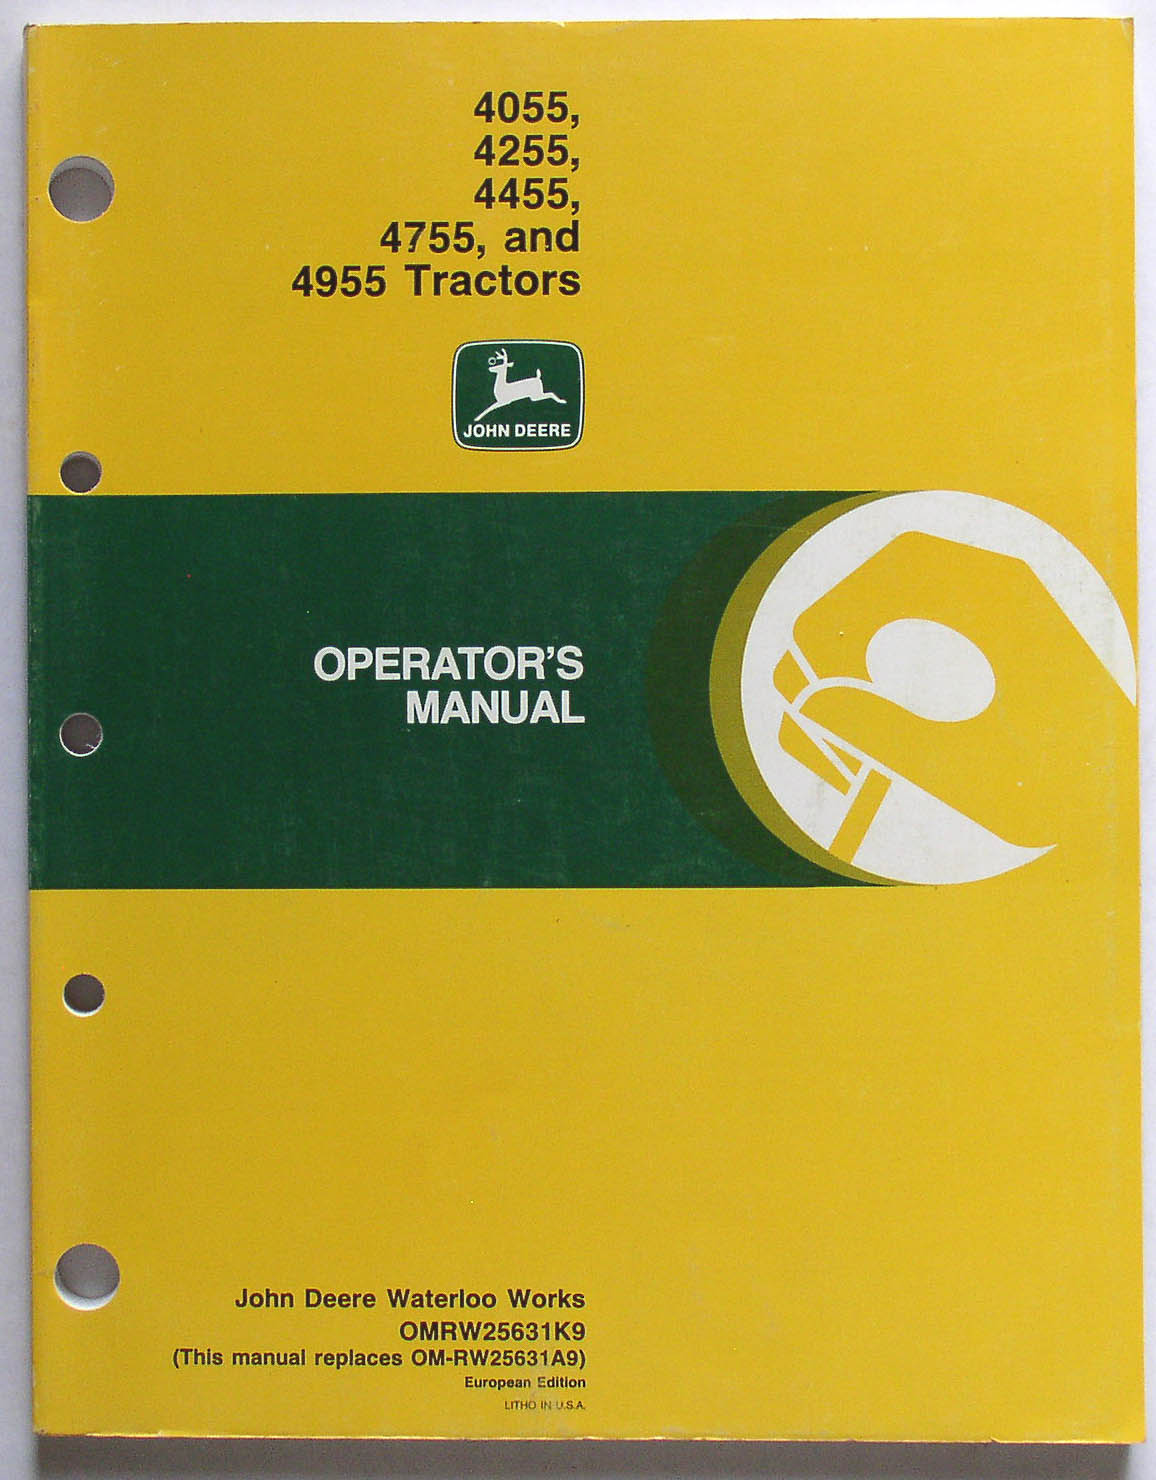 John Deere 4055 Wiring Schematic Diagram Libraries For 720 Tractor And 4455 Manual U2013 Page 3 Thingery Previews Postviews U0026 Thoughtsjohn